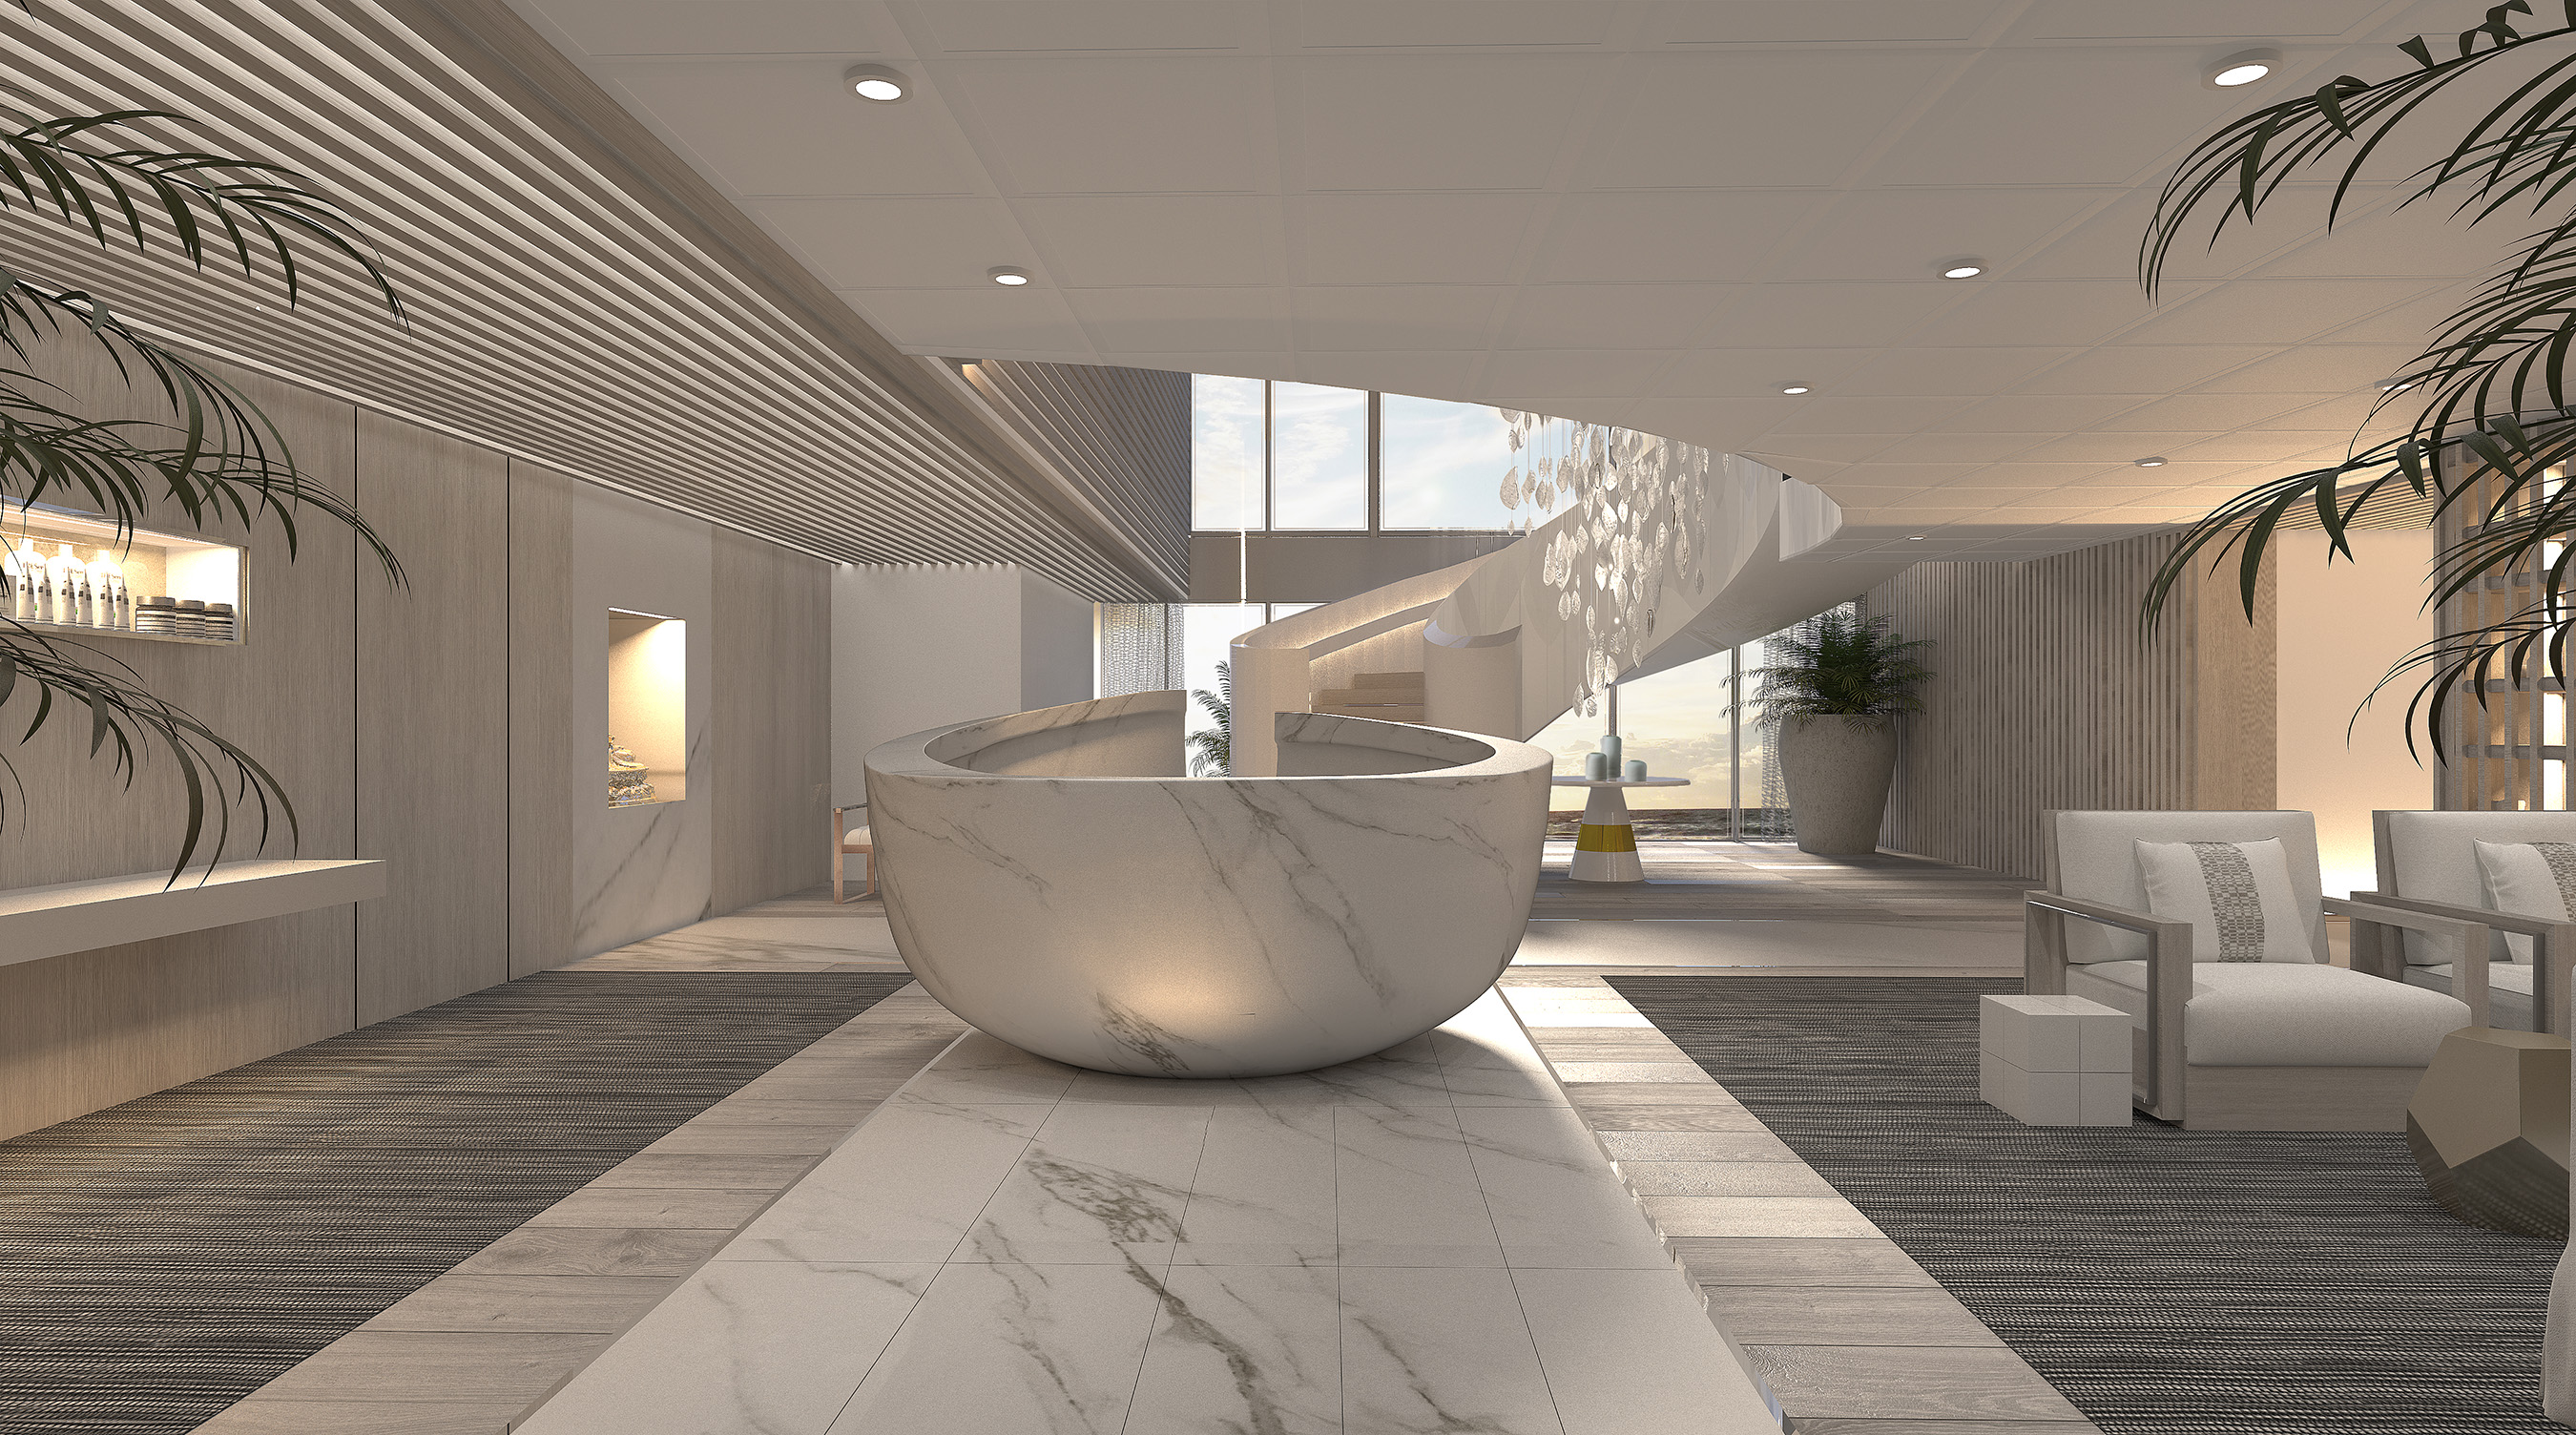 At the entrance of The Spa on Celebrity Edge, guests are greeted by an imposing and dramatic, yet Zen-like sculpture acting as a reception desk and bespoke blended essences, welcoming a sense of calm.